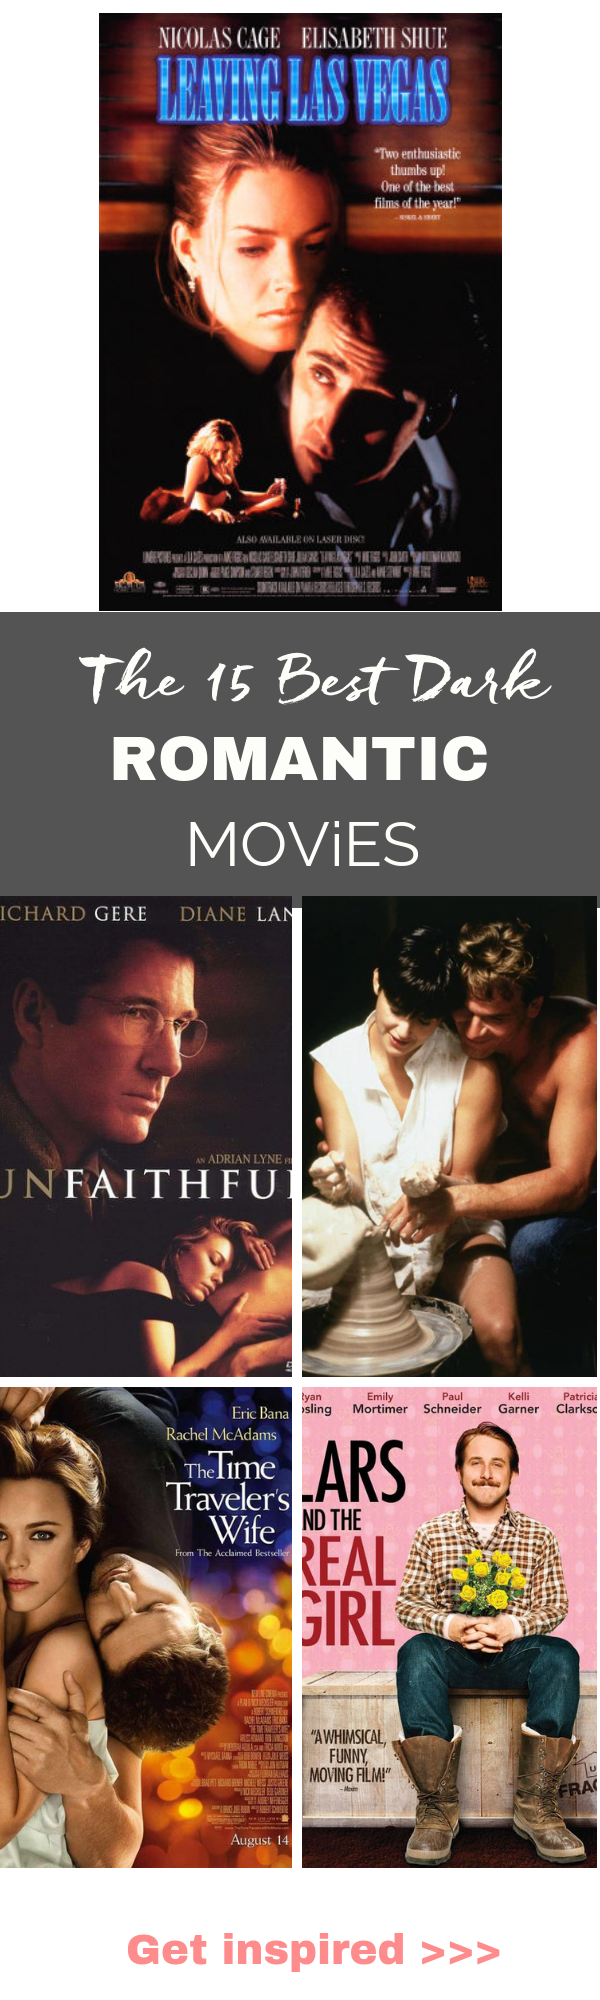 The 15 BEST dark romantic movies of all time.  From Ghost to Leaving Las Vegas to Titanic. Are you in the move for some epic romance movies.  Get the list. #romanticmovies #valentinesday #bestmovies